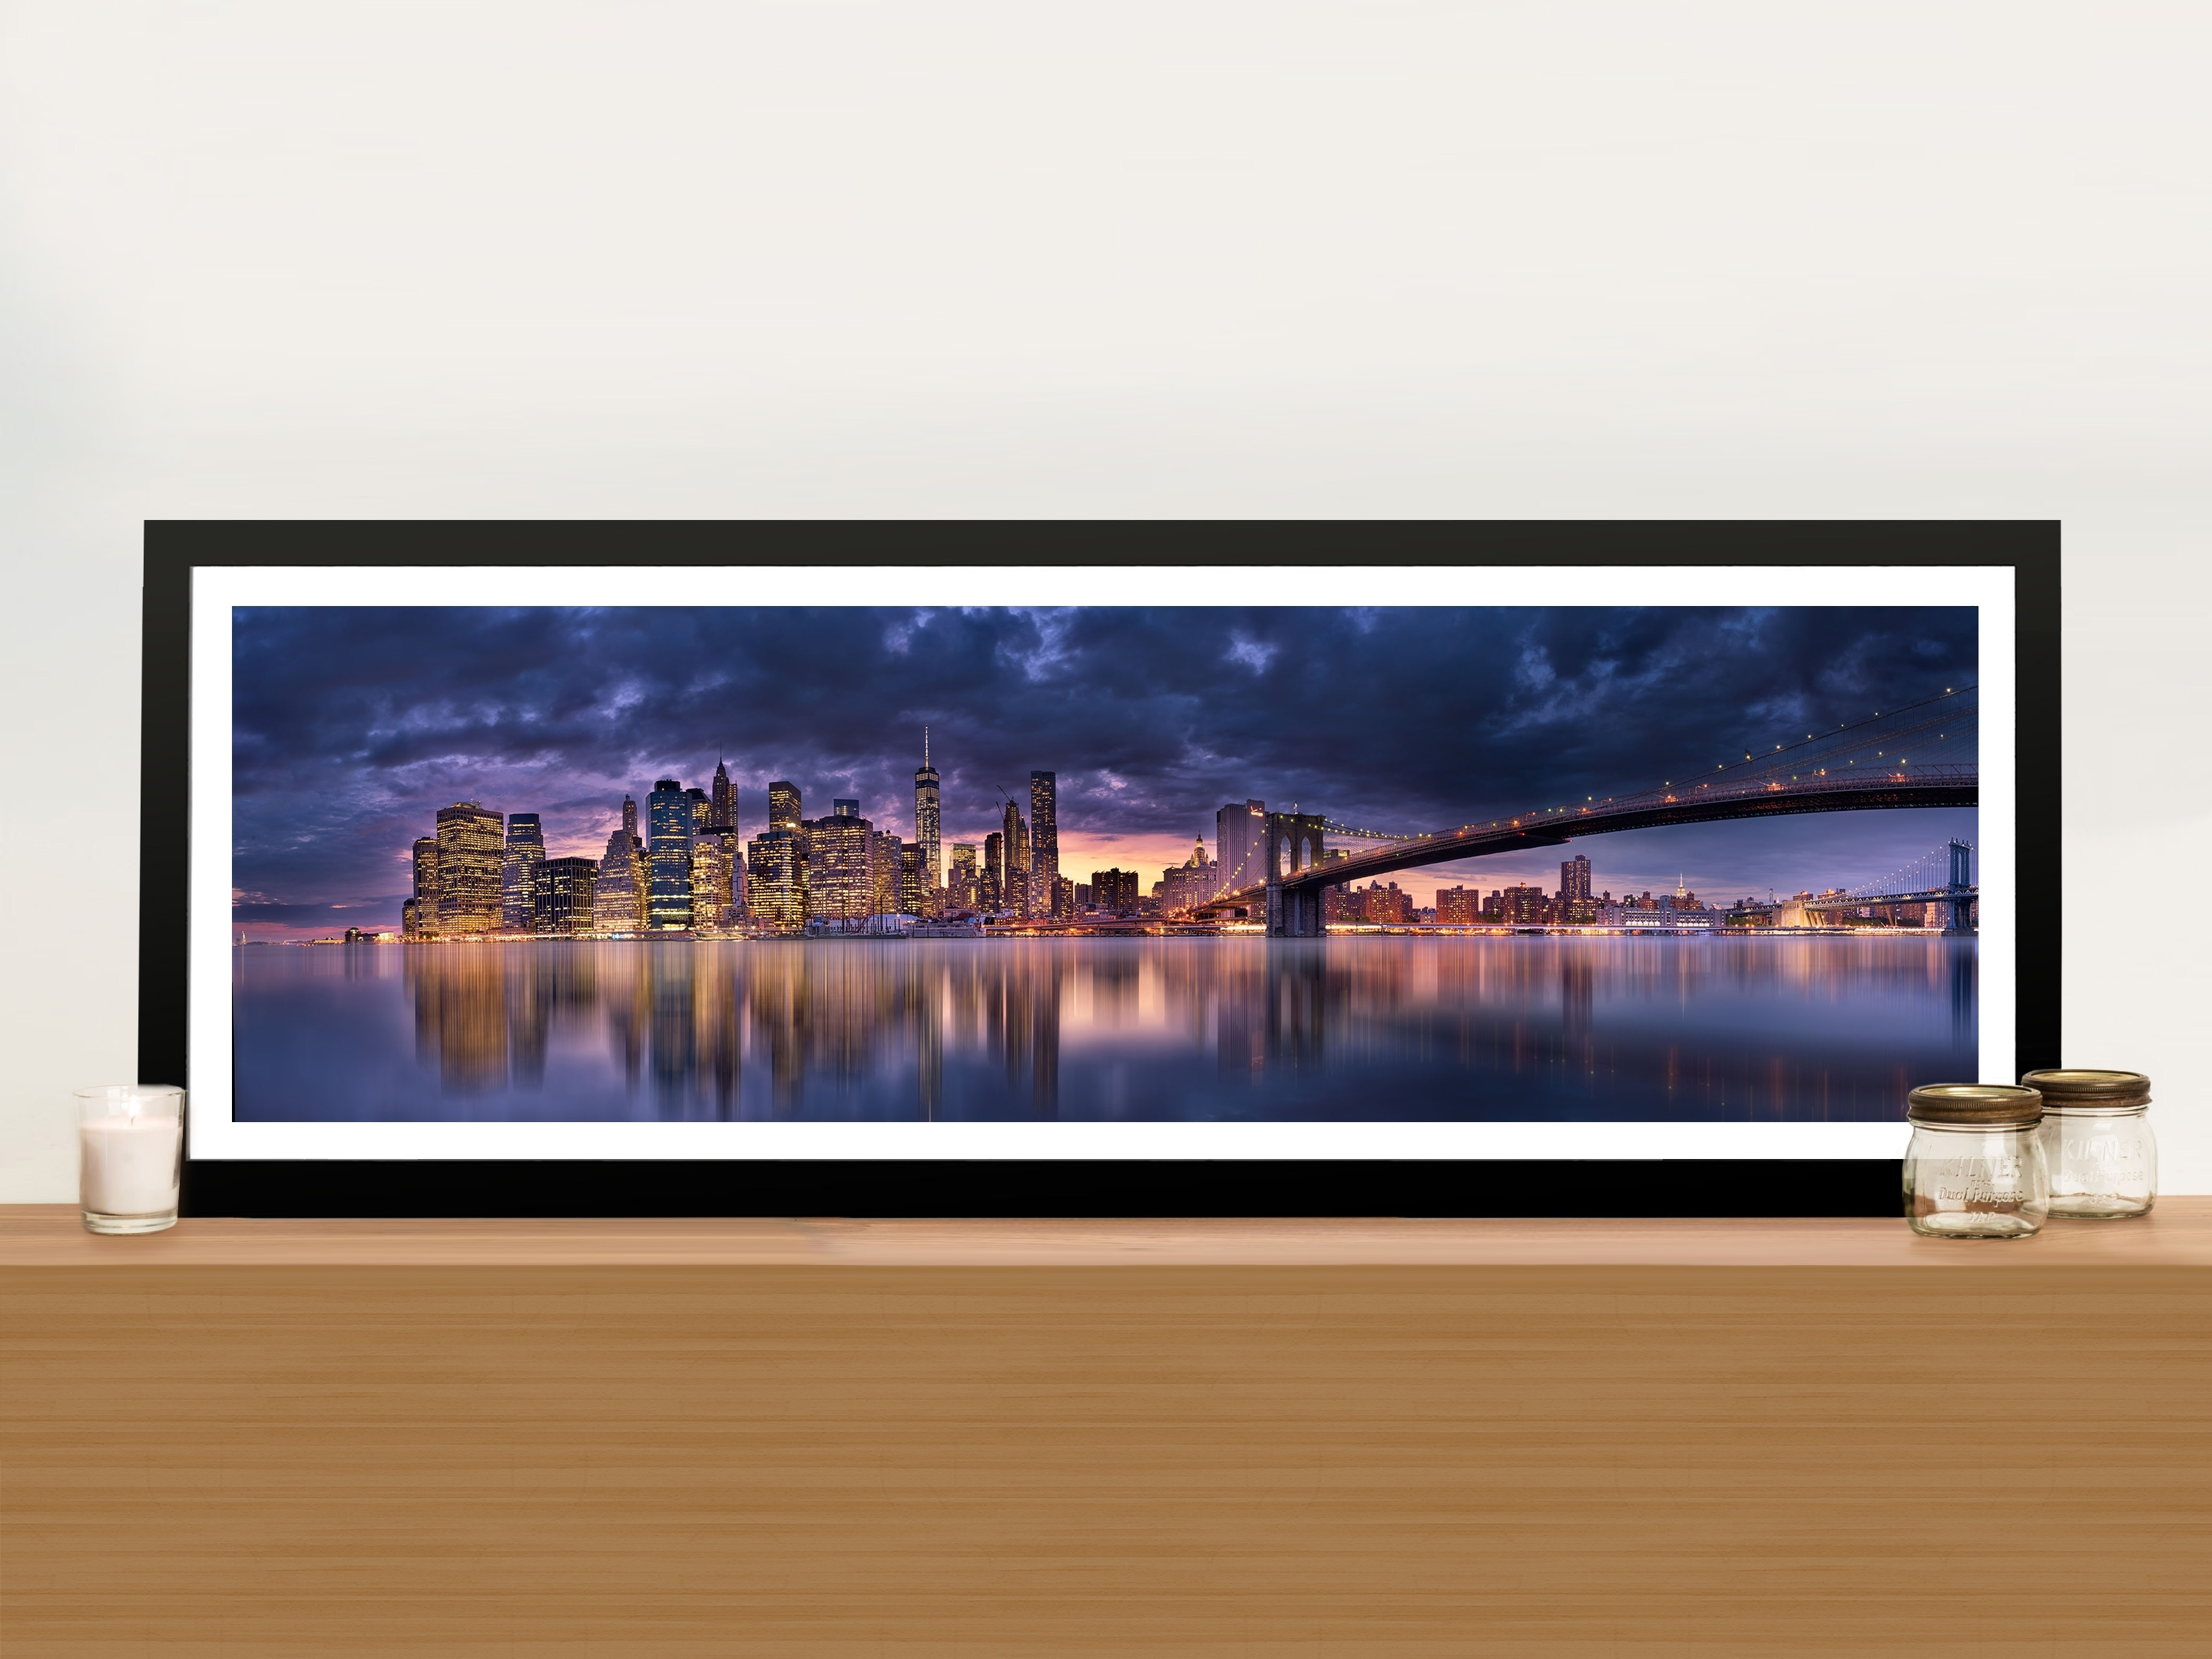 Brooklyn Bridge New York Panoramic Wall Art Print On Canvas Online Art Intended For 2017 Panoramic Wall Art (View 7 of 15)